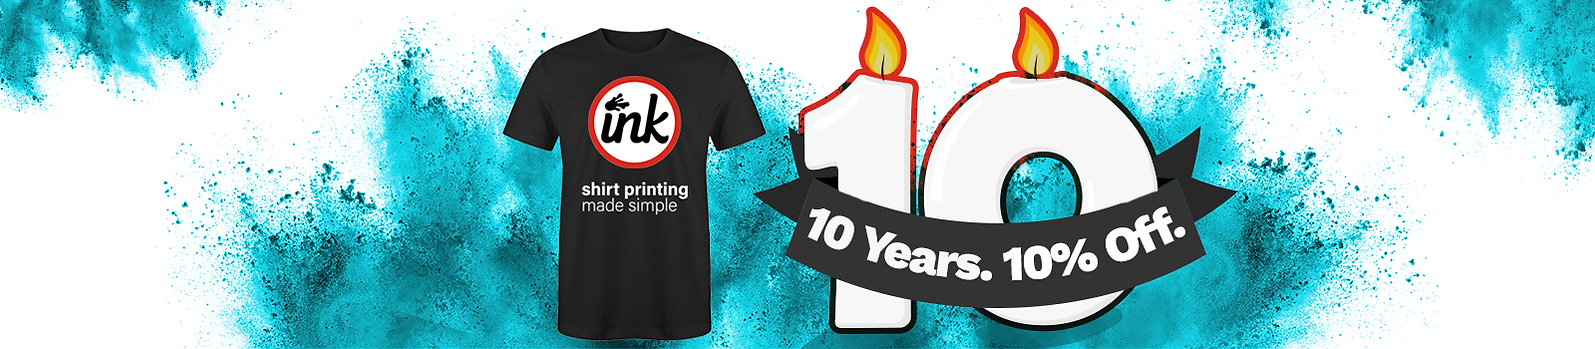 iNk-anniversary-banner.png